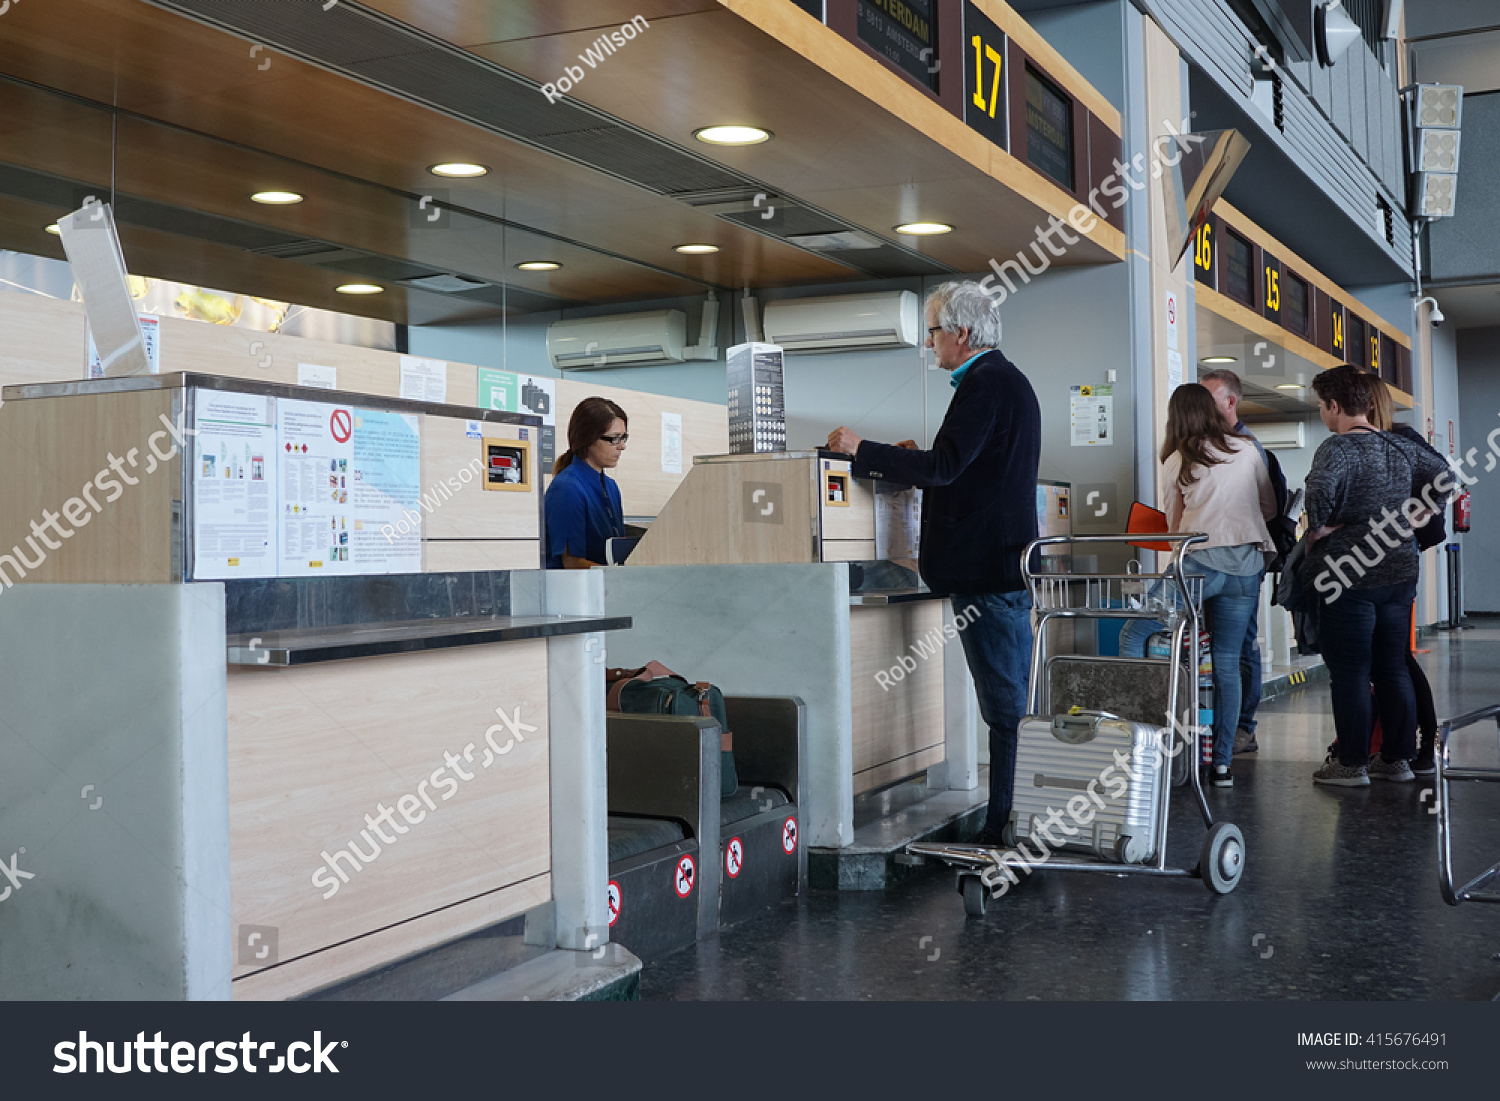 Valencia Spain April 30 2016 Airline Stock Photo 415676491